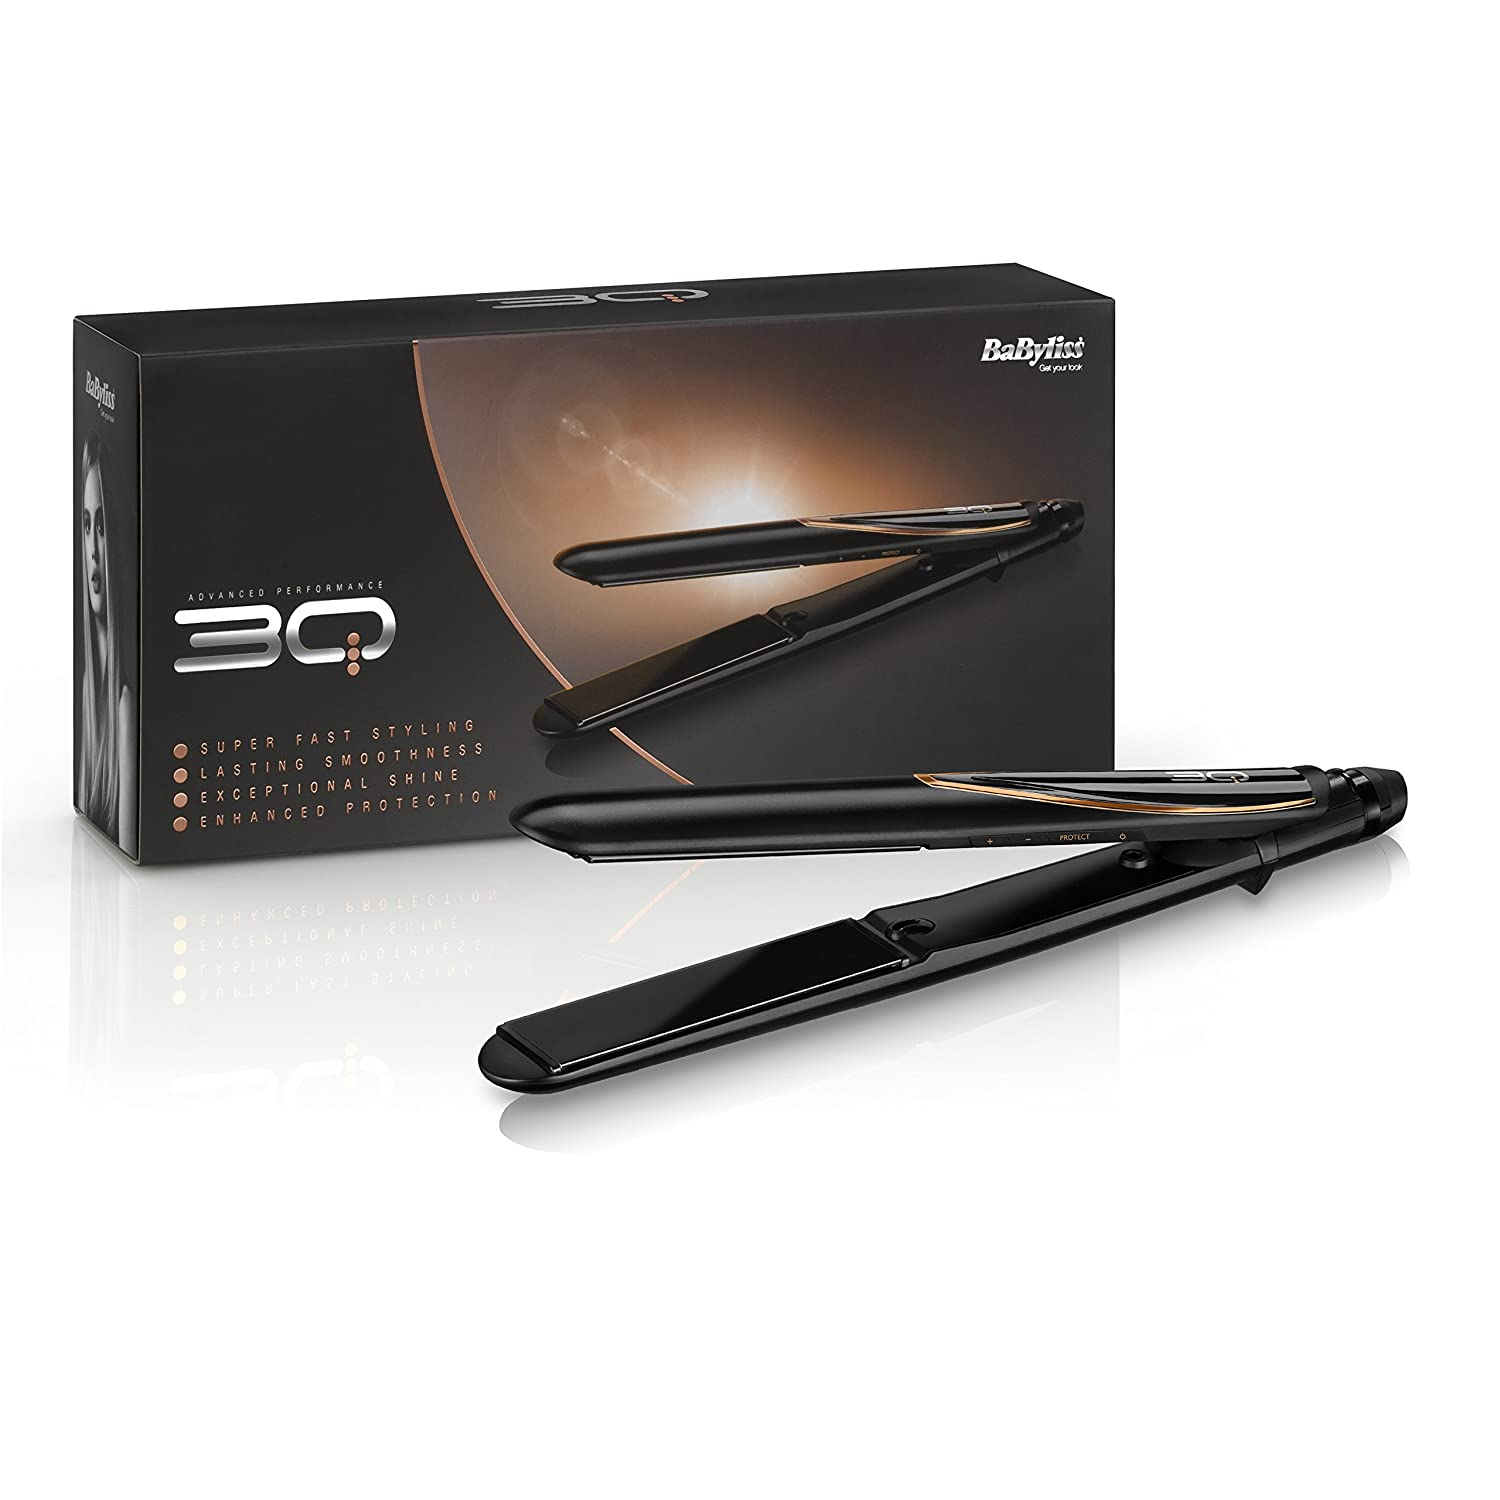 BaByliss 3Q Ultimate Performance Straightener